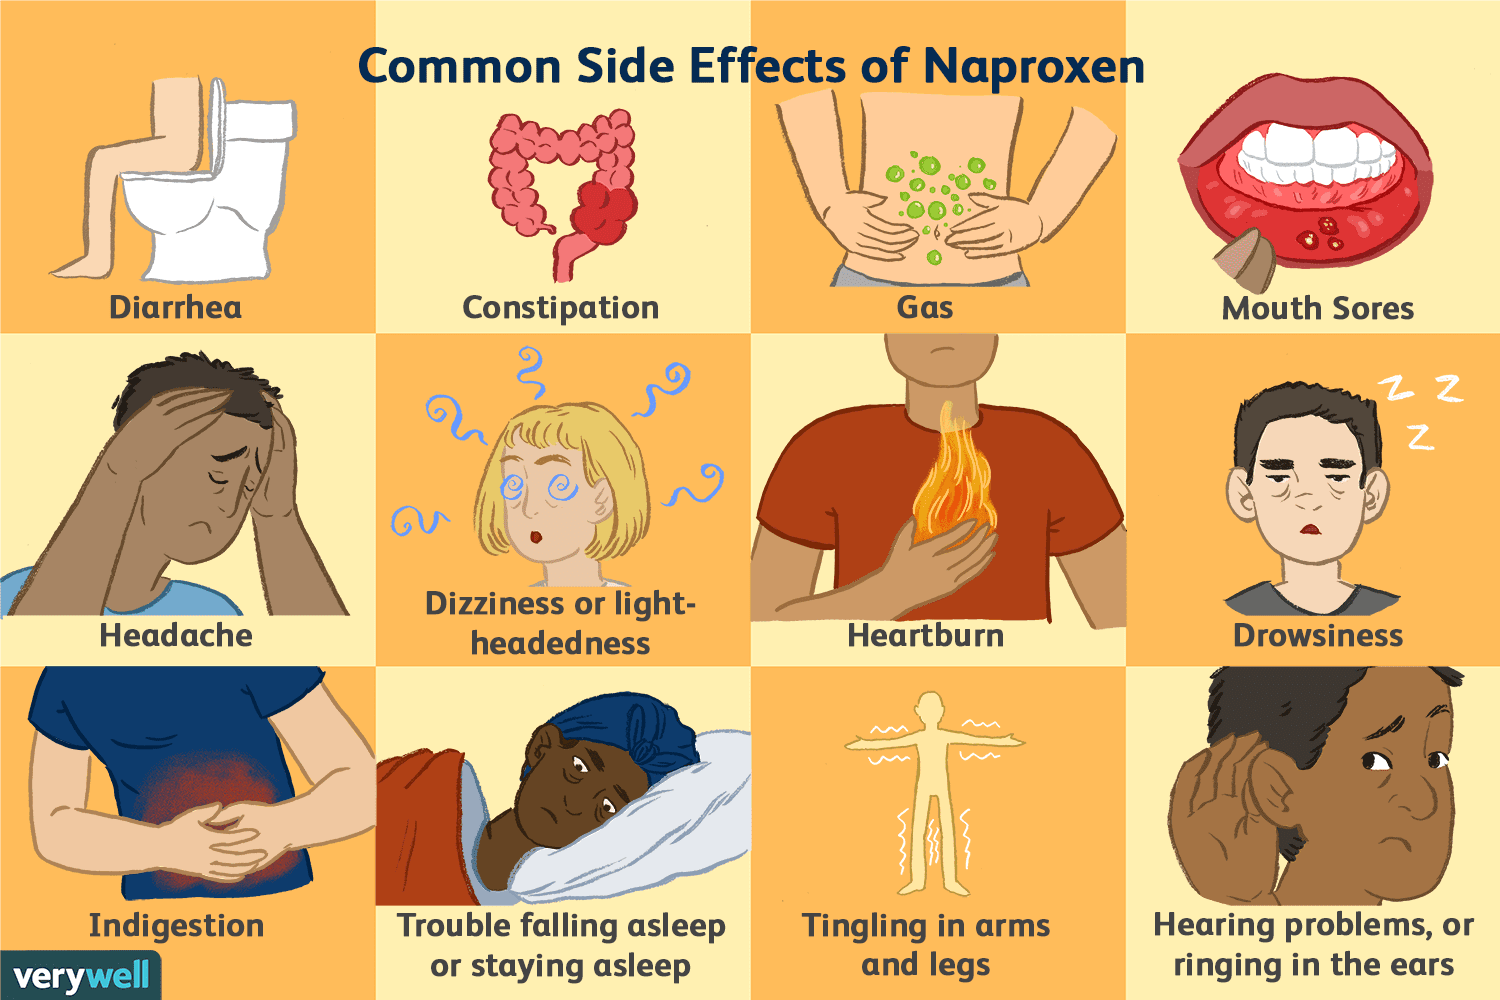 Treating Arthritis With Naproxen